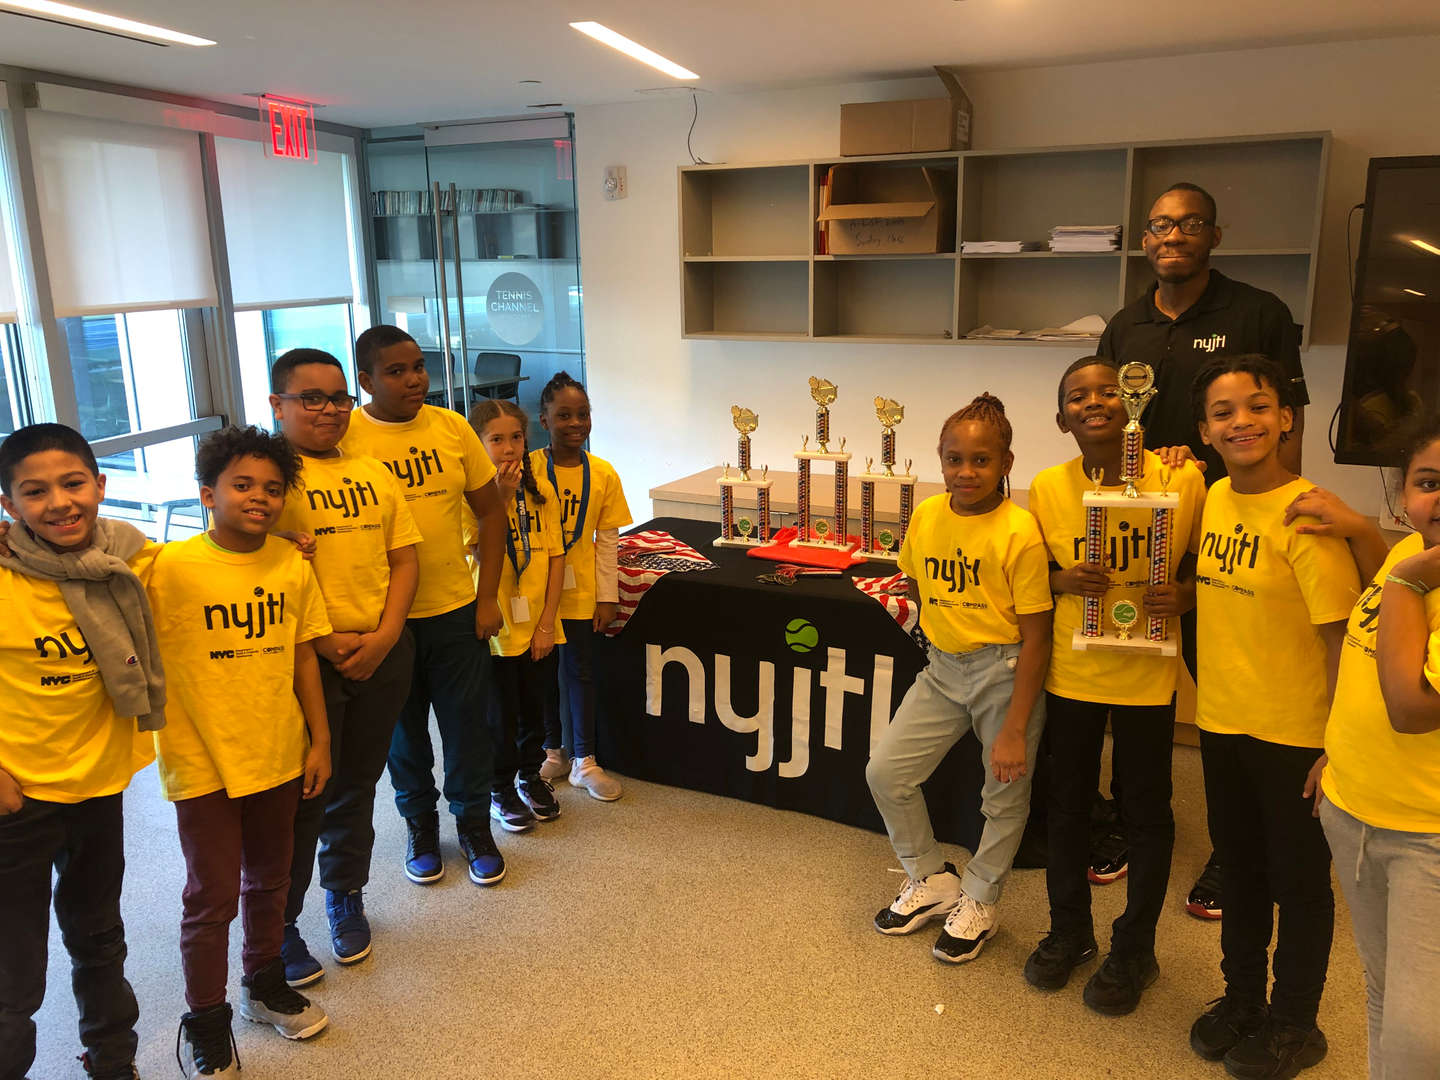 nyjtl students with trophy